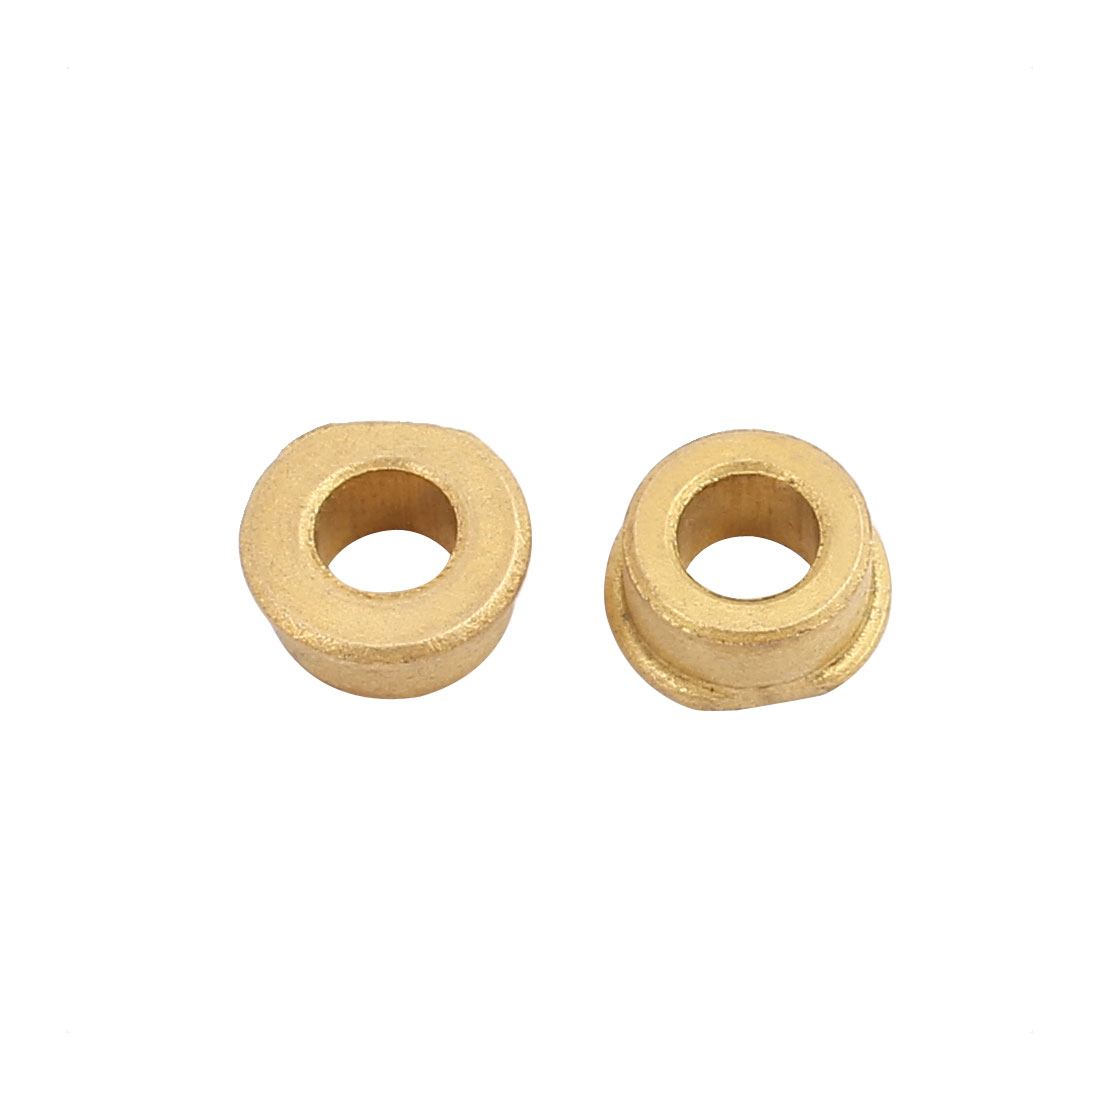 Pair 4mm Hole Dia Bronze Shaft Bushing Height 5mm Depth 8.2mm